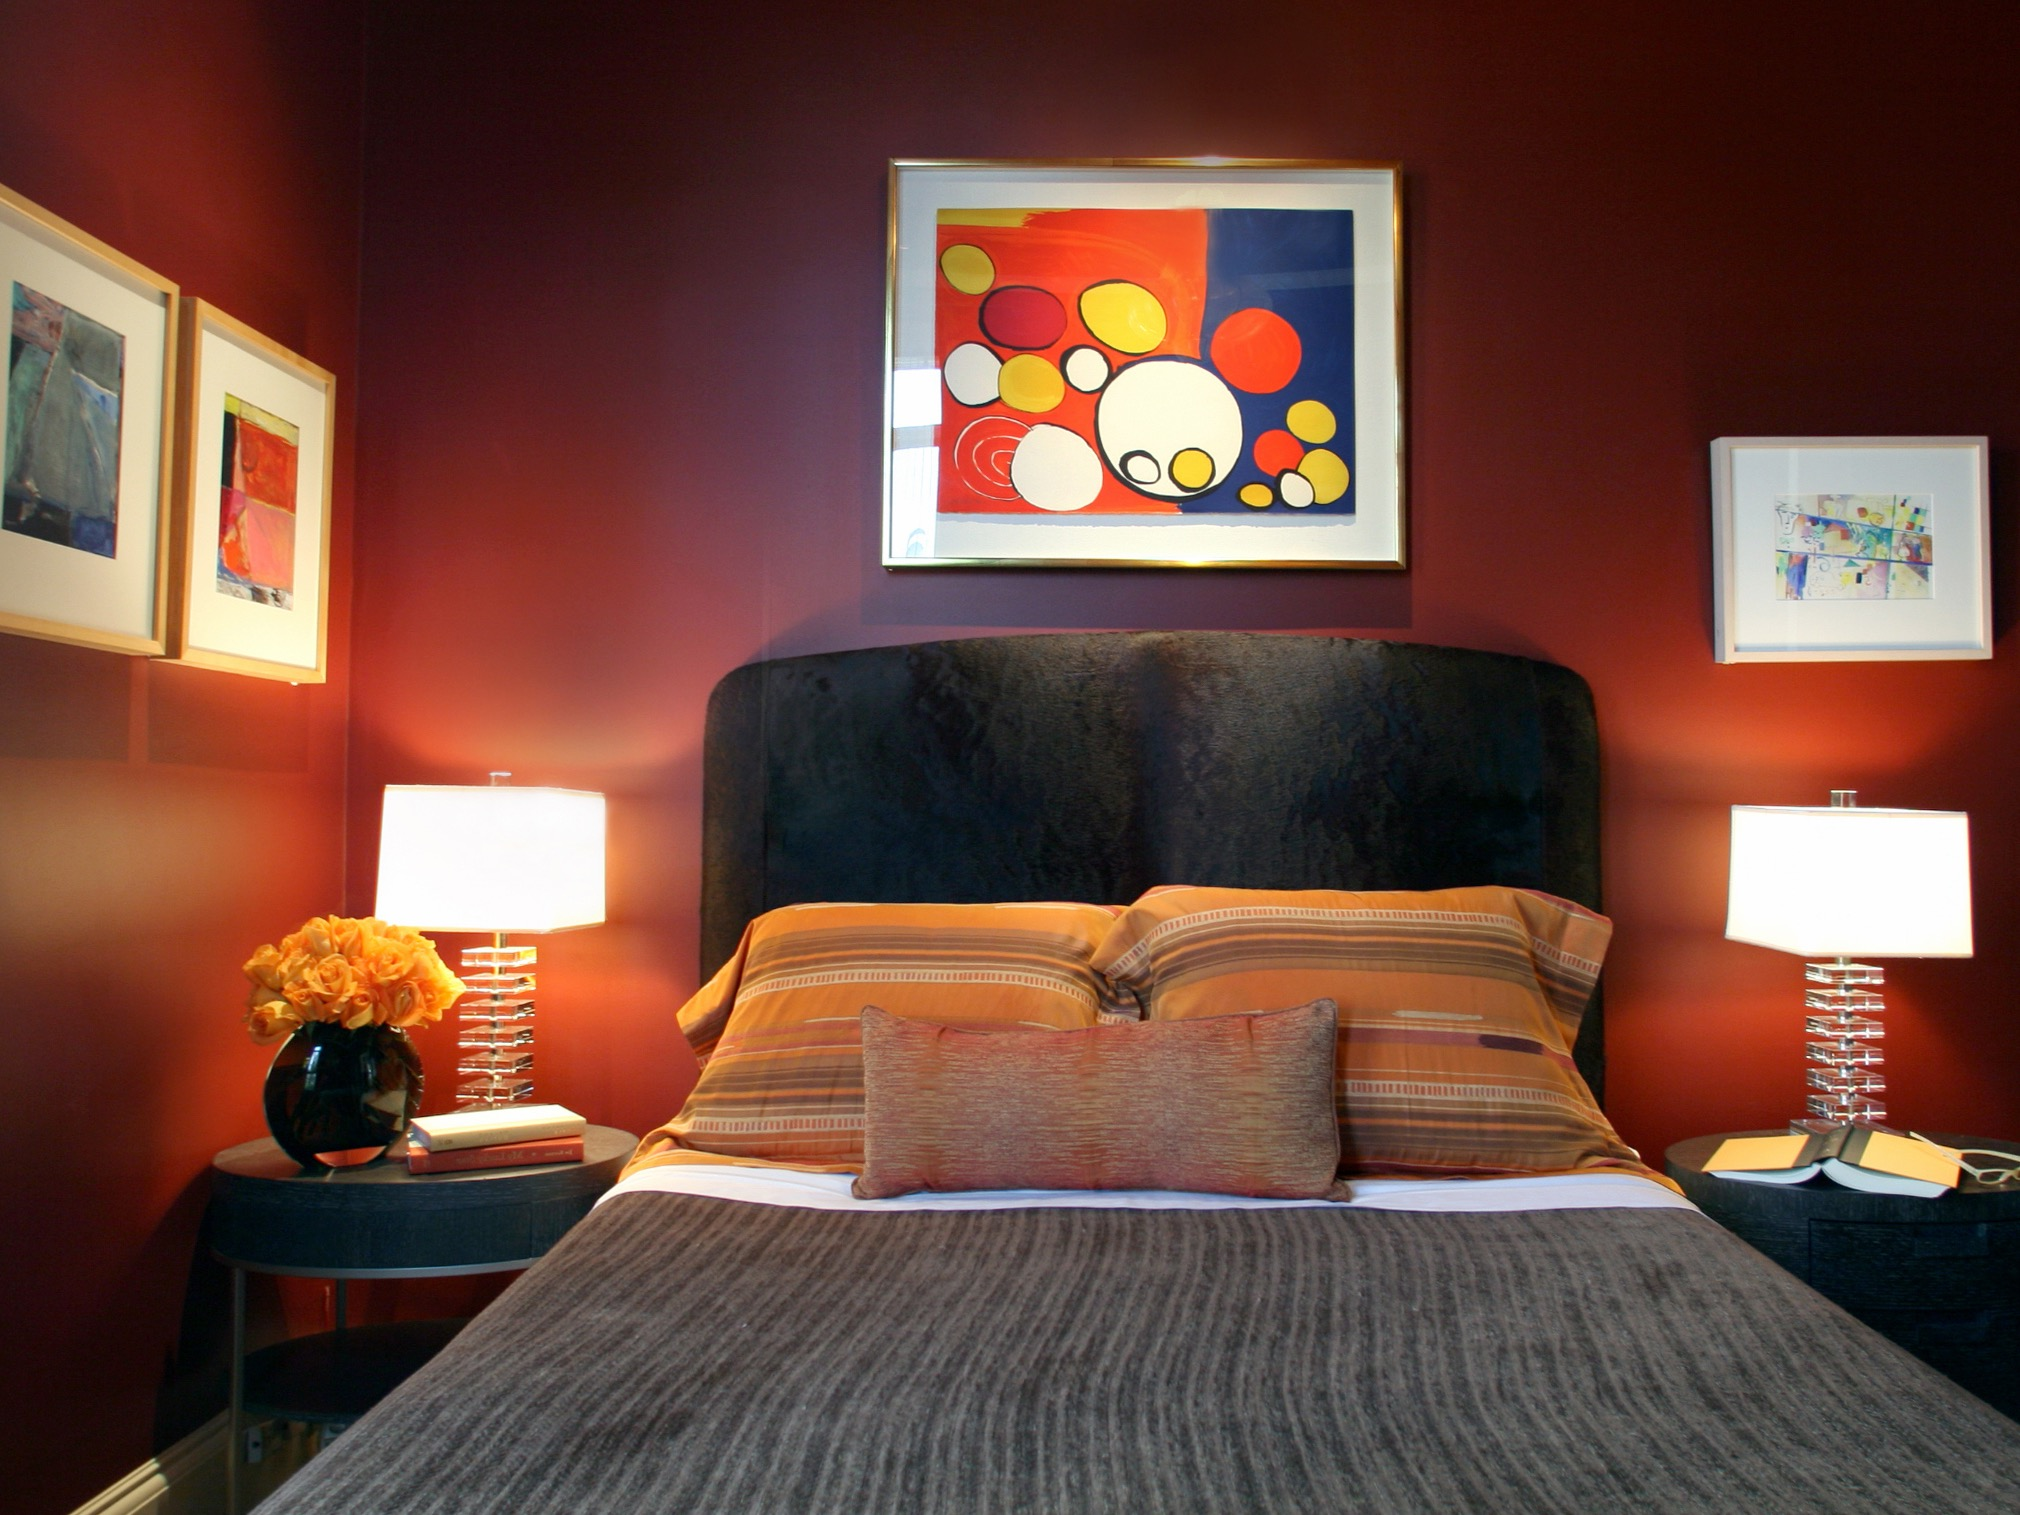 Dark Red Gothic Bedroom With Black Headboard And Framed Modern Artwork (Image 5 of 11)